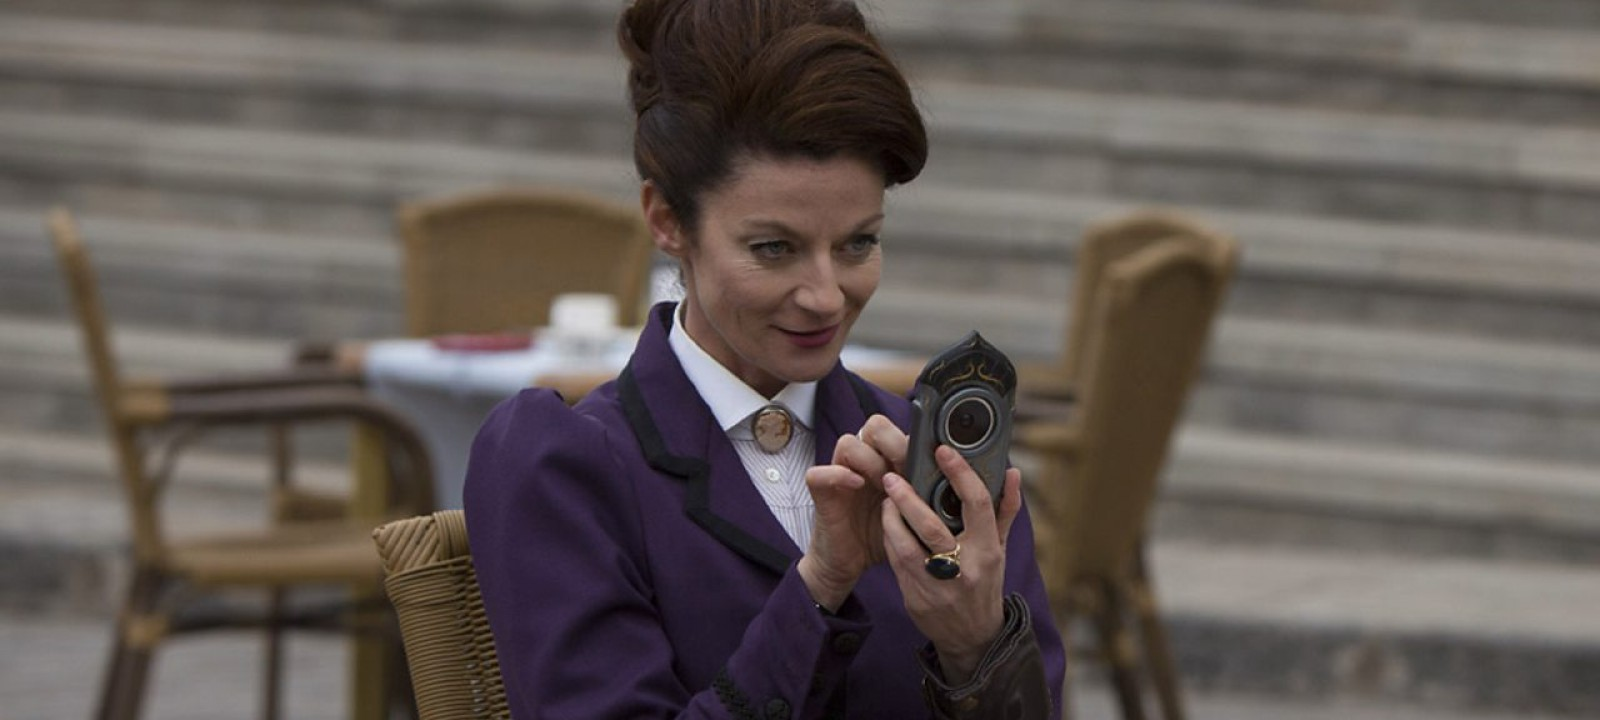 Michelle Gomez as Missy in 'The Magician's Apprentice' (Photo: BBC)